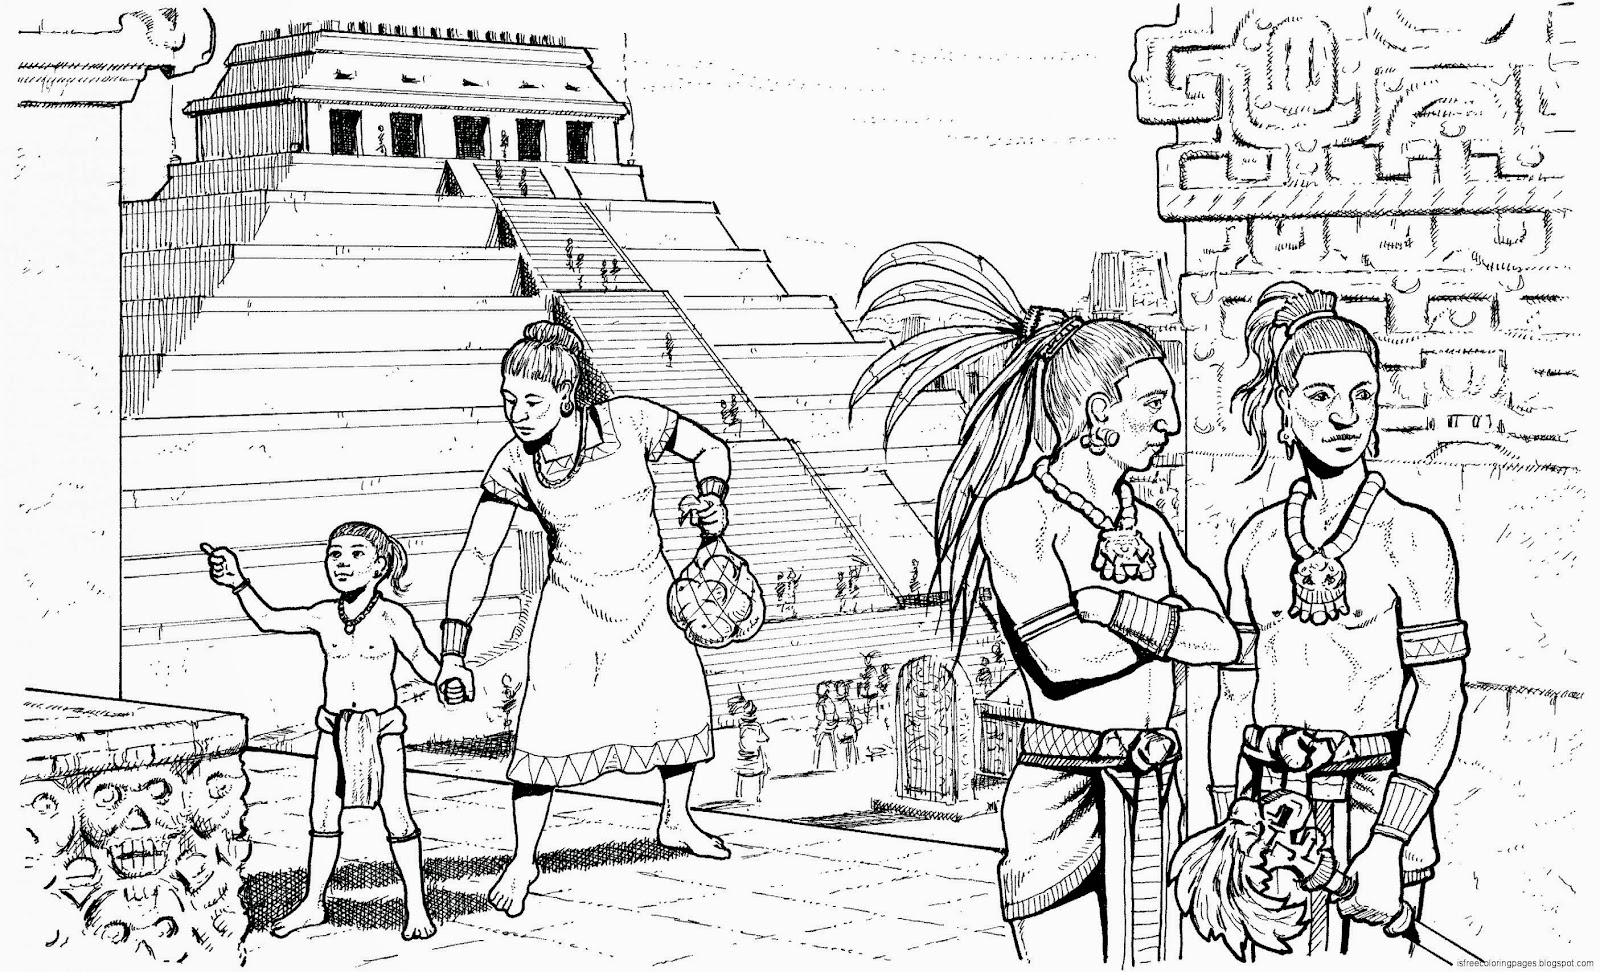 Adult Top Mayan Coloring Pages Images top maya coloring pages free mayan calendar page marjorie barrick museum images